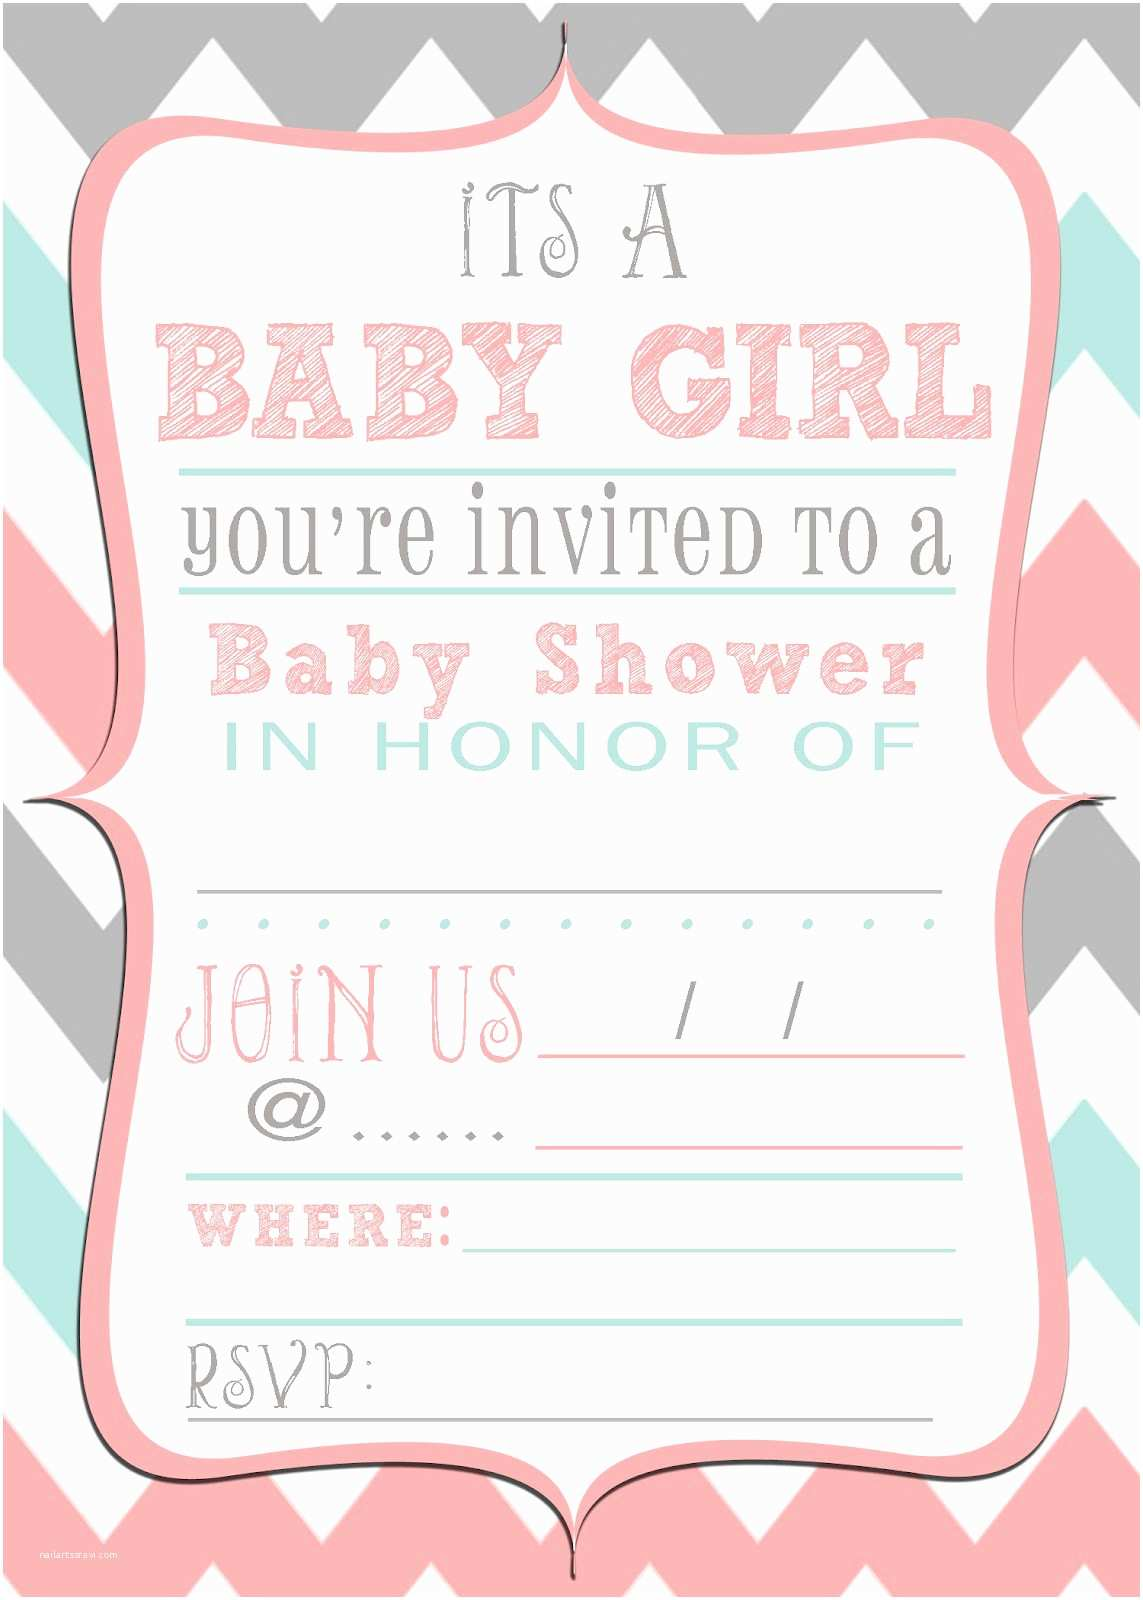 Free Baby Shower Invitations Templates Mrs This and that Baby Shower Banner Free Downloads